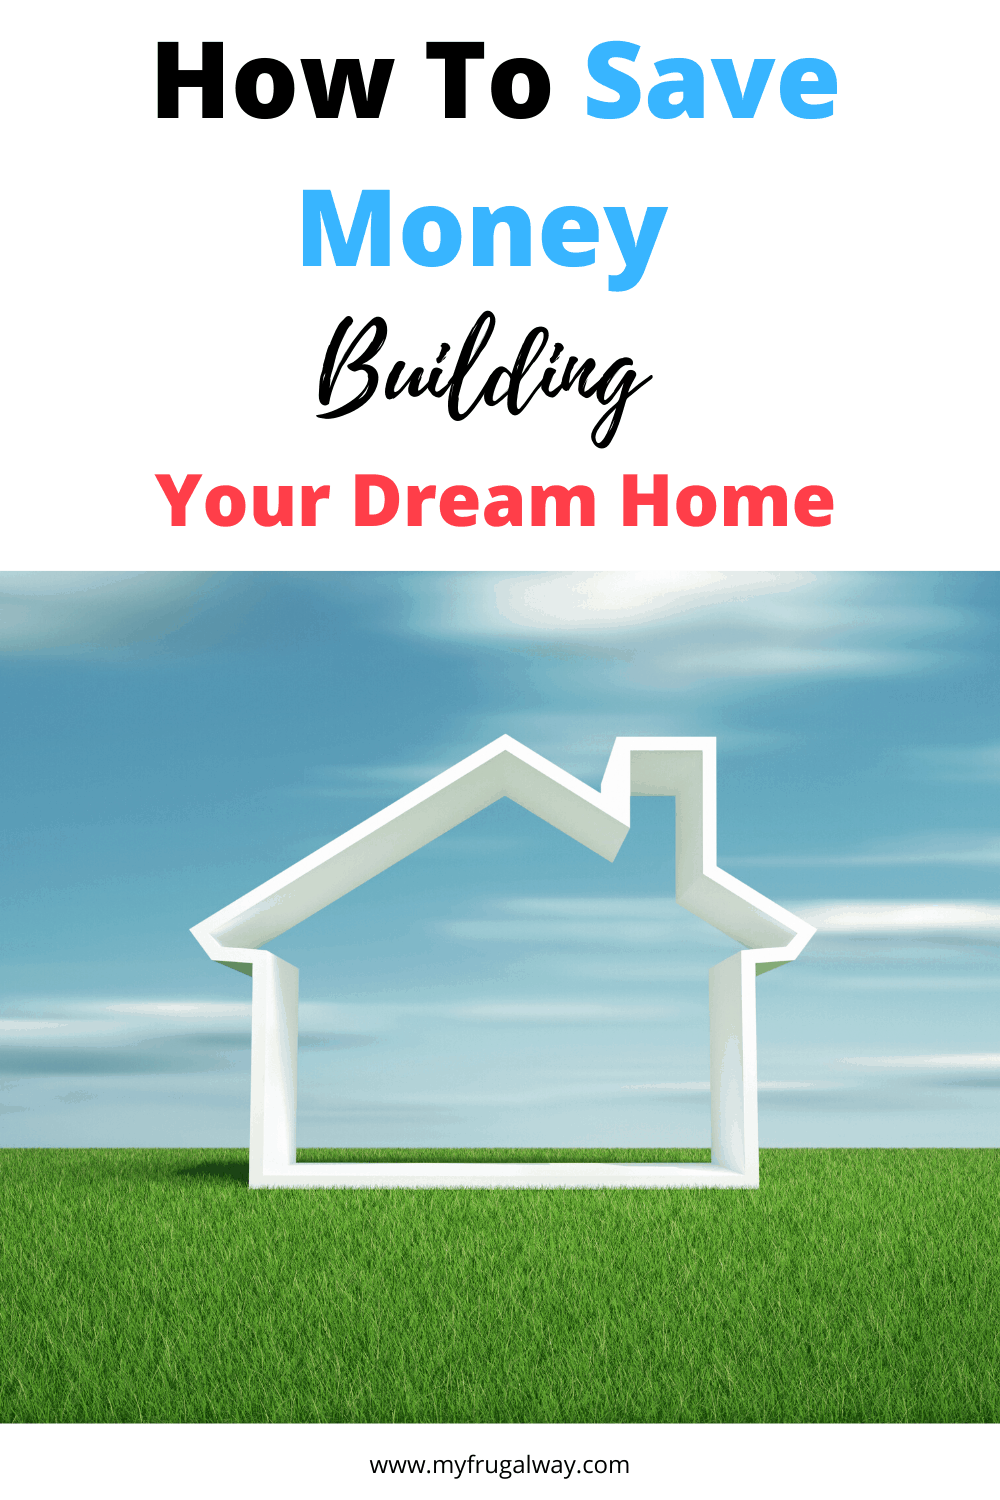 How to save money building a new home. Money saving budget tips from contractor to help you save thousands when designing a new home. Build your new home smarter that will save you more money.